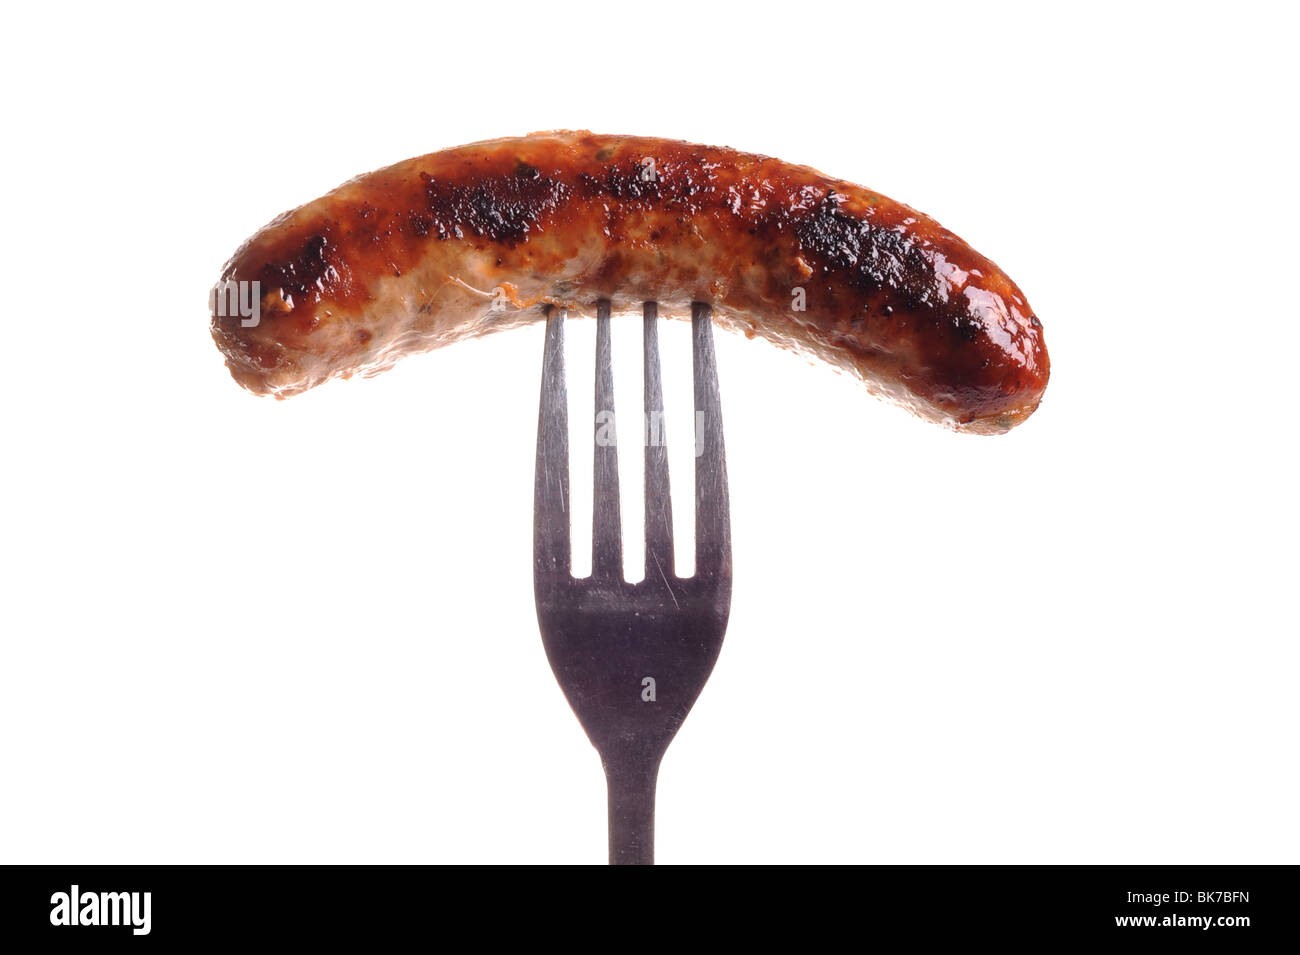 Cooked Sausage on fork - Stock Image